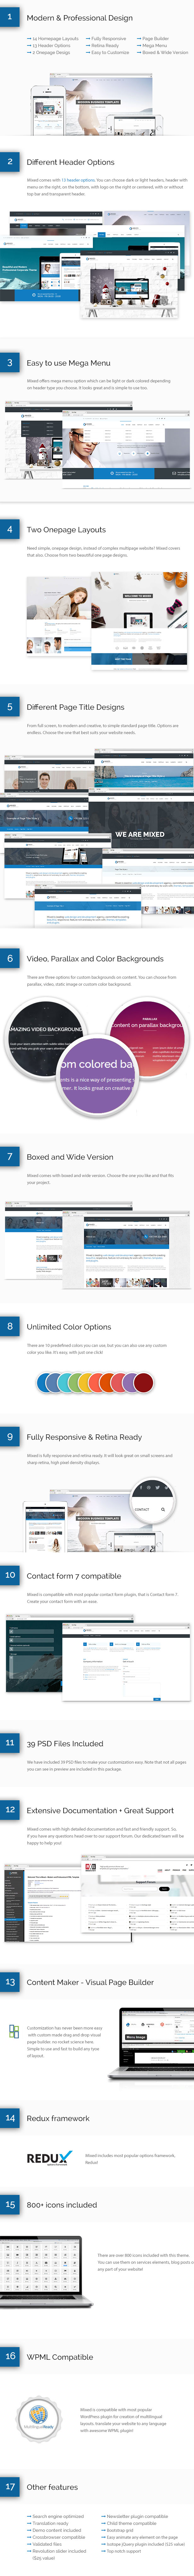 Mixed - Modern and Professional WordPress Theme - 2  Download Mixed – Modern and Professional WordPress Theme nulled mixed big preview